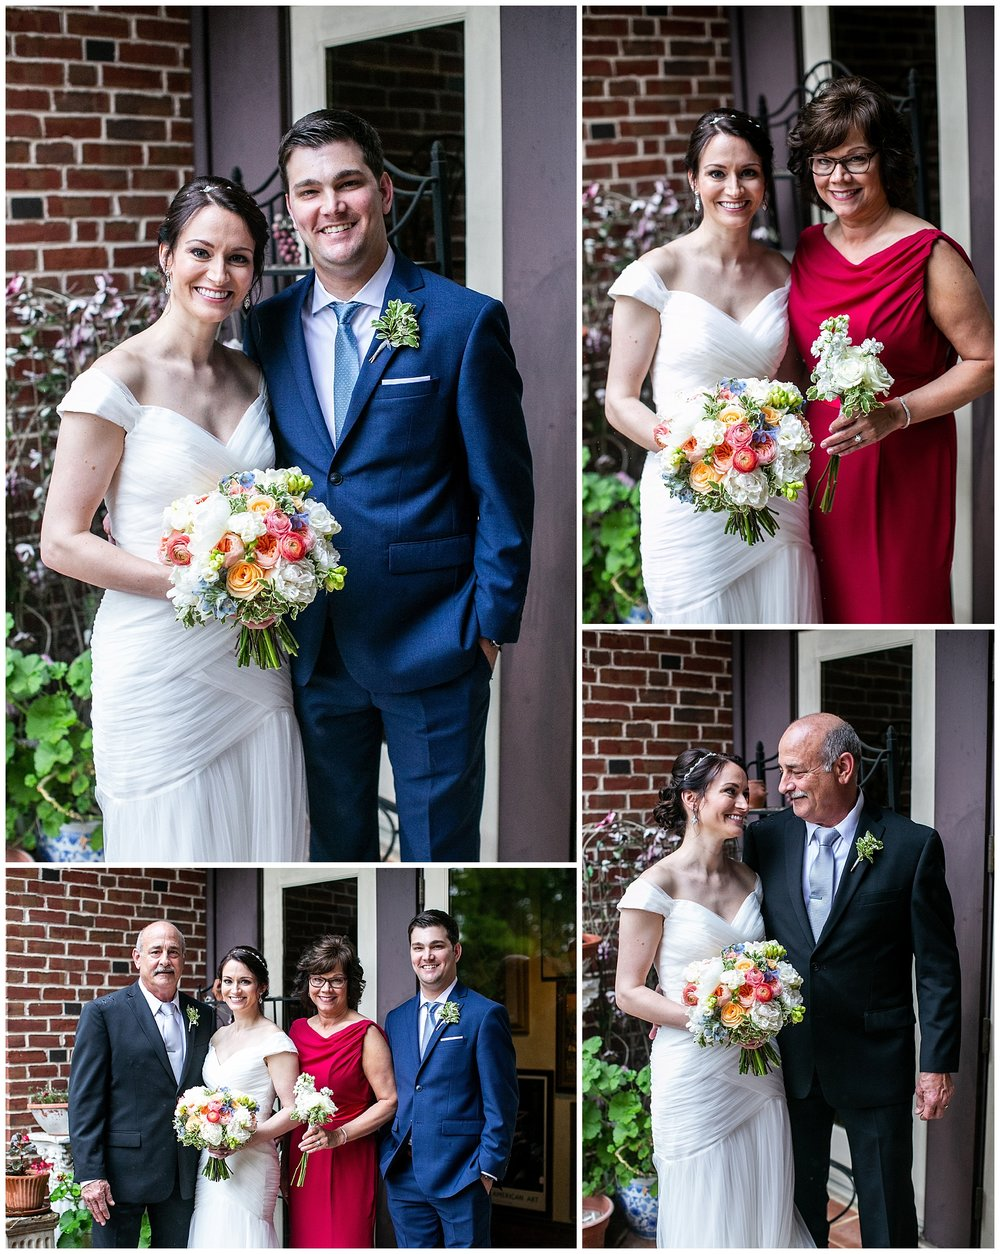 Ashley + Kevin Gramercy Mansion Rainy Day Baltimore Wedding Living Radiant Photography photos_0061.jpg